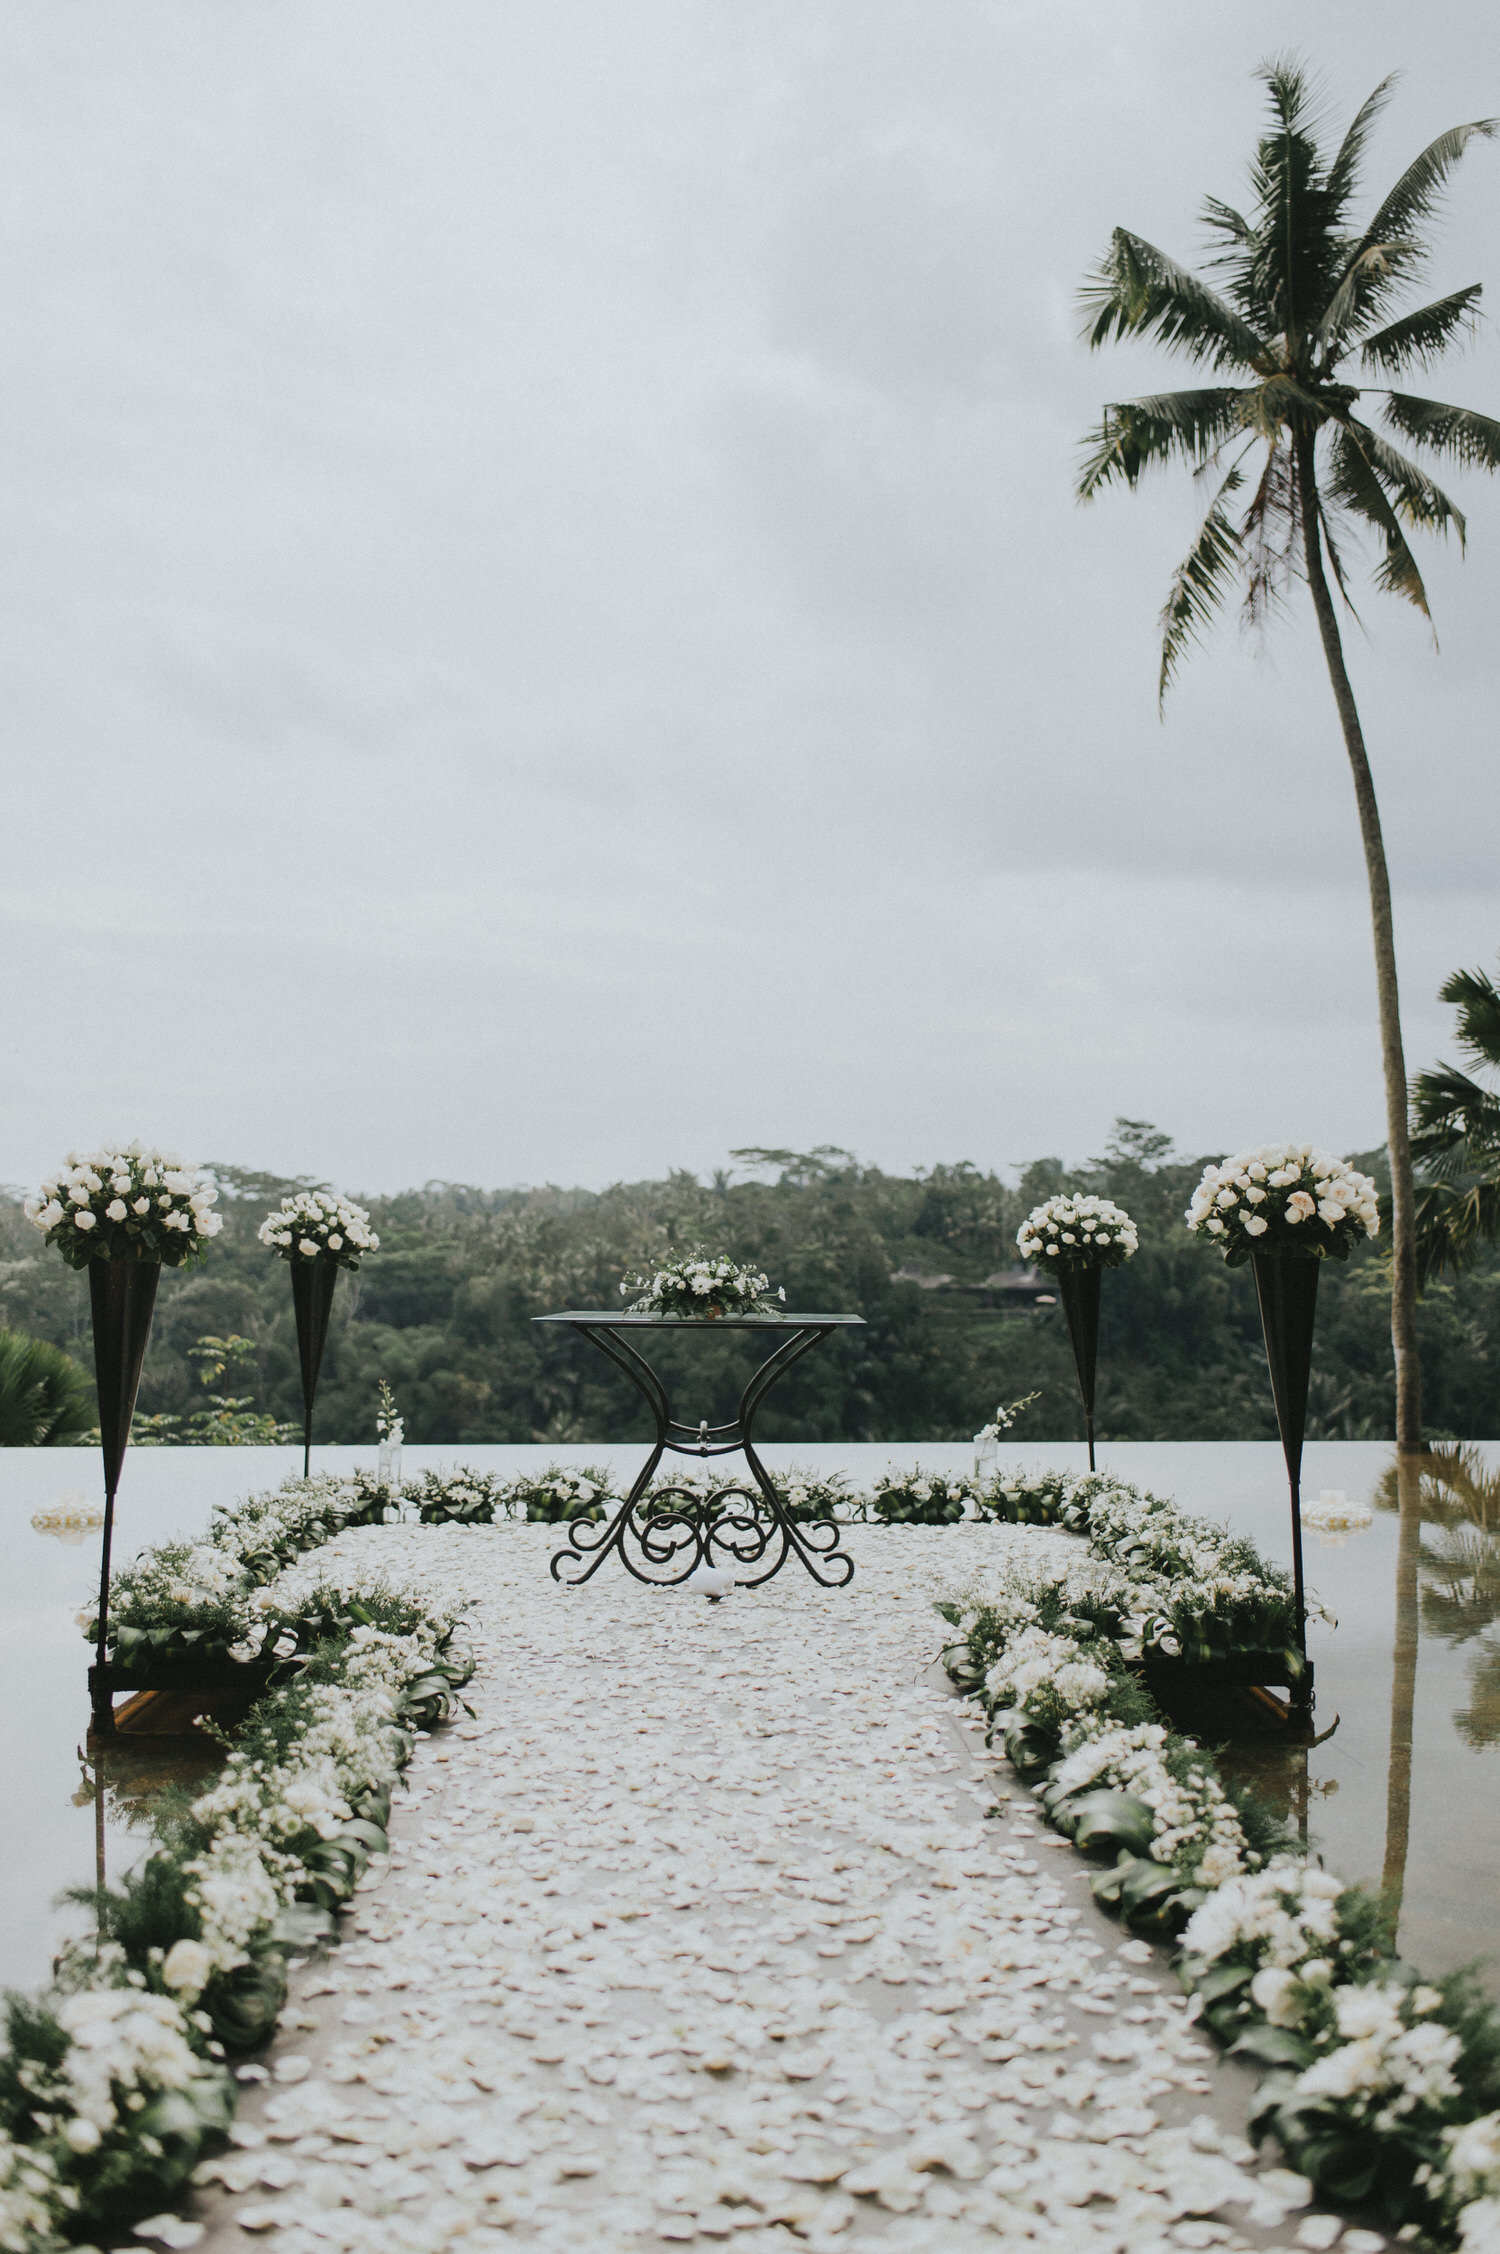 bali wedding - elopement - ubud wedding - diktatphotography - olga + Jason - 36